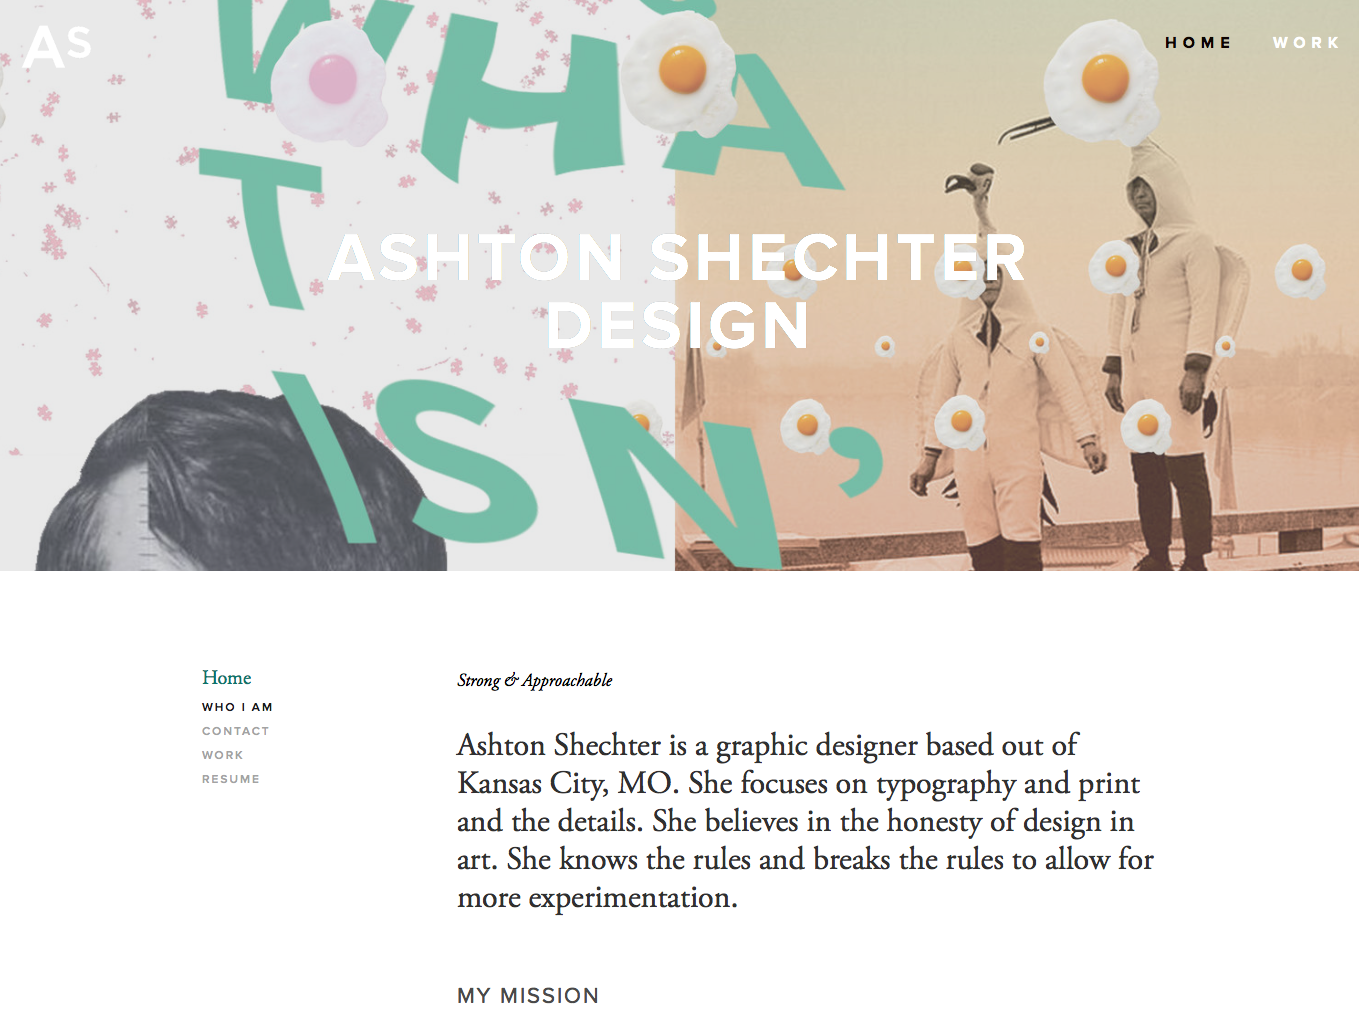 s15-pp-ashtonshechter-website1.png